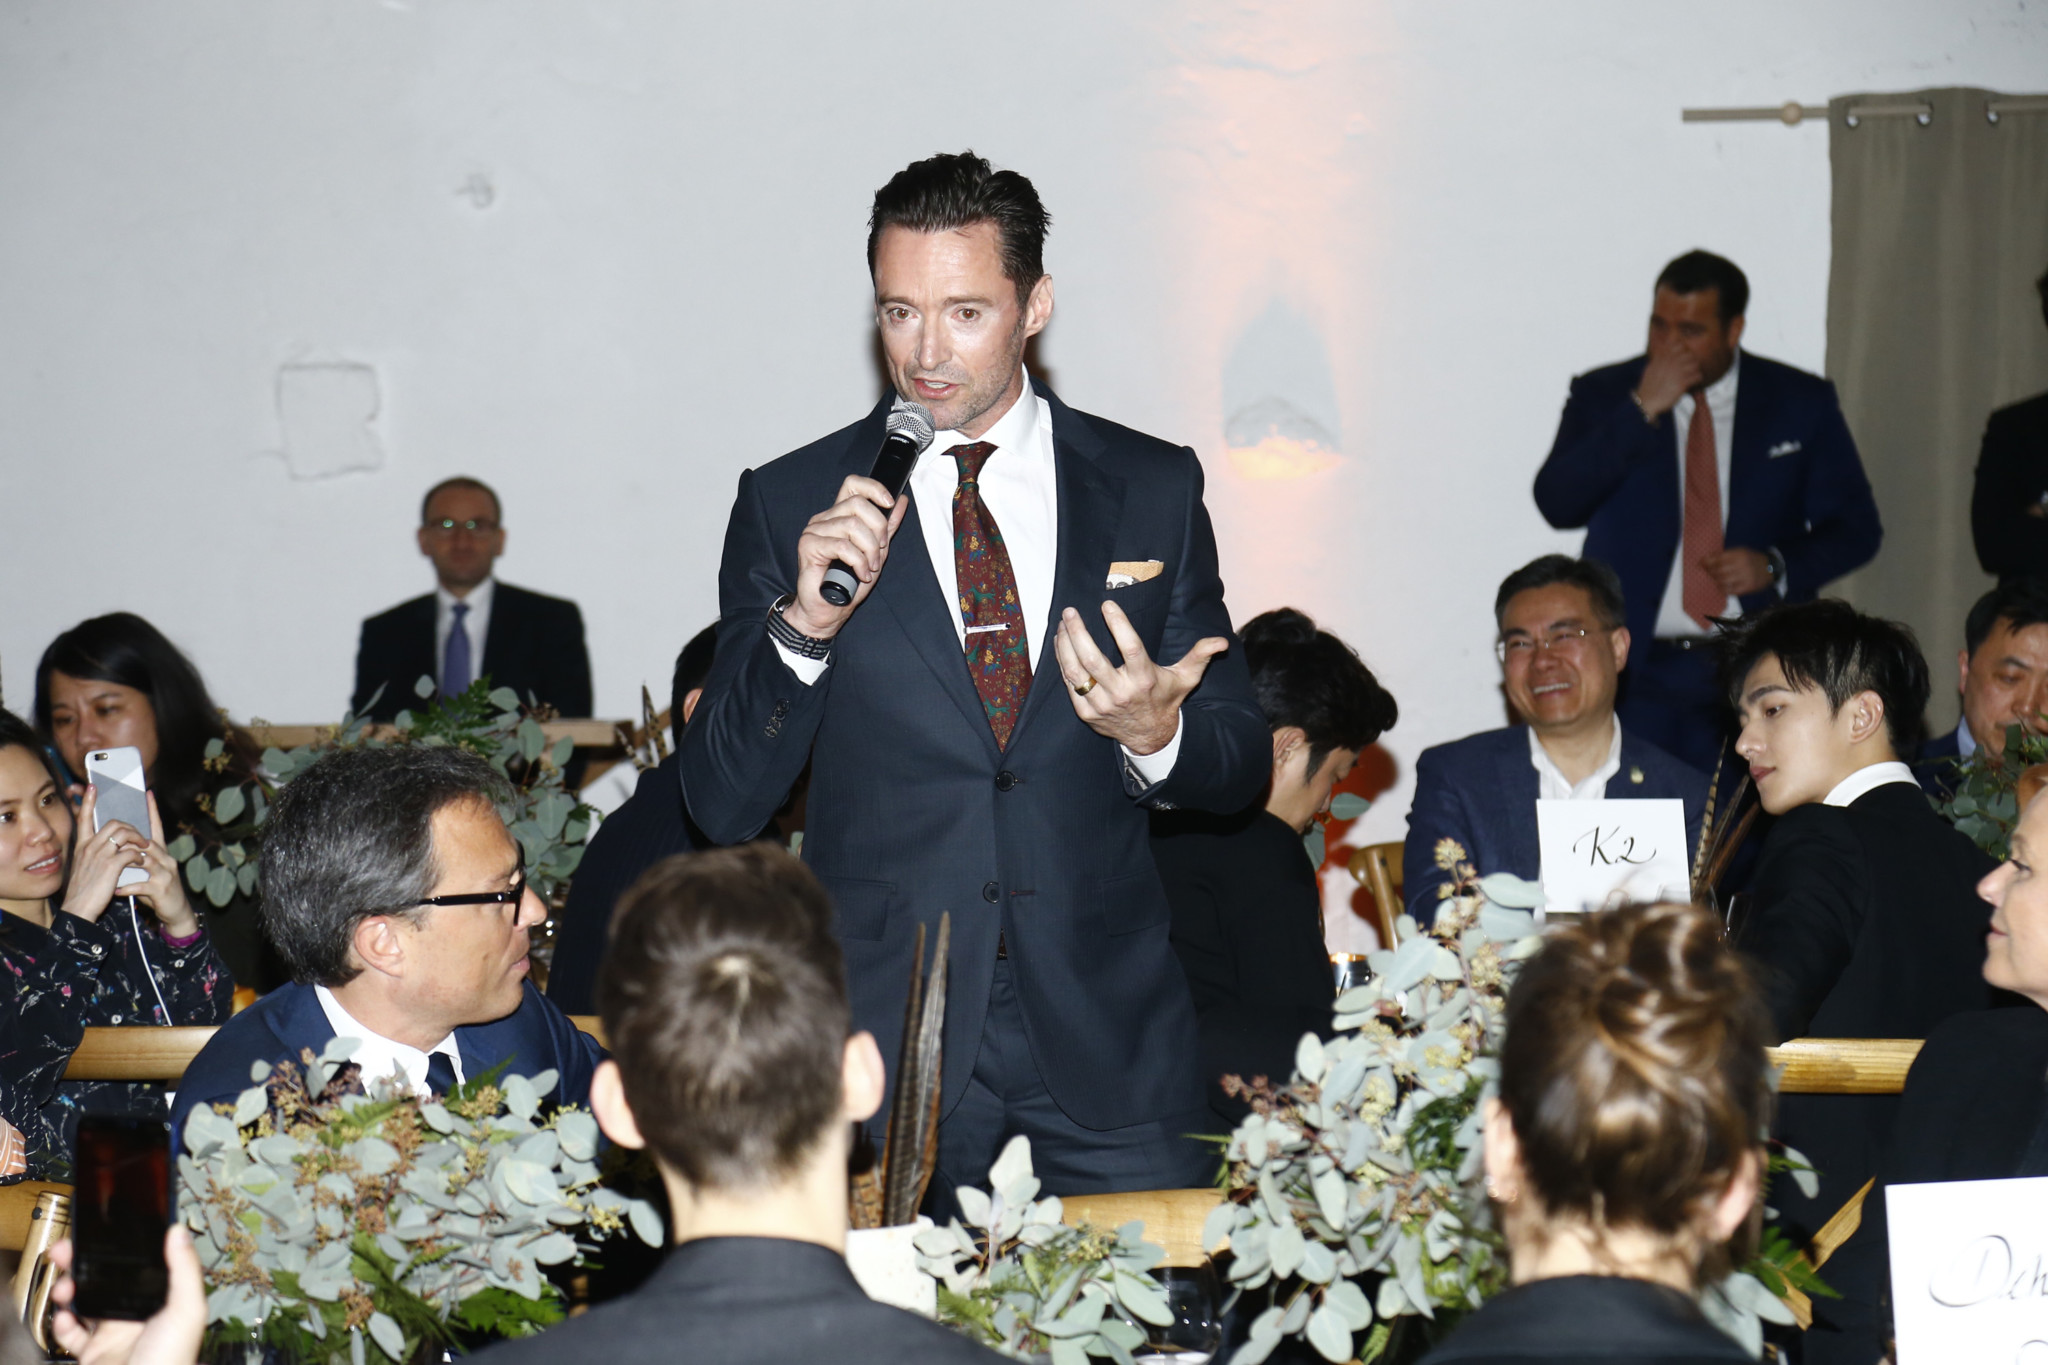 Hugh Jackman saying a few words at the dinner